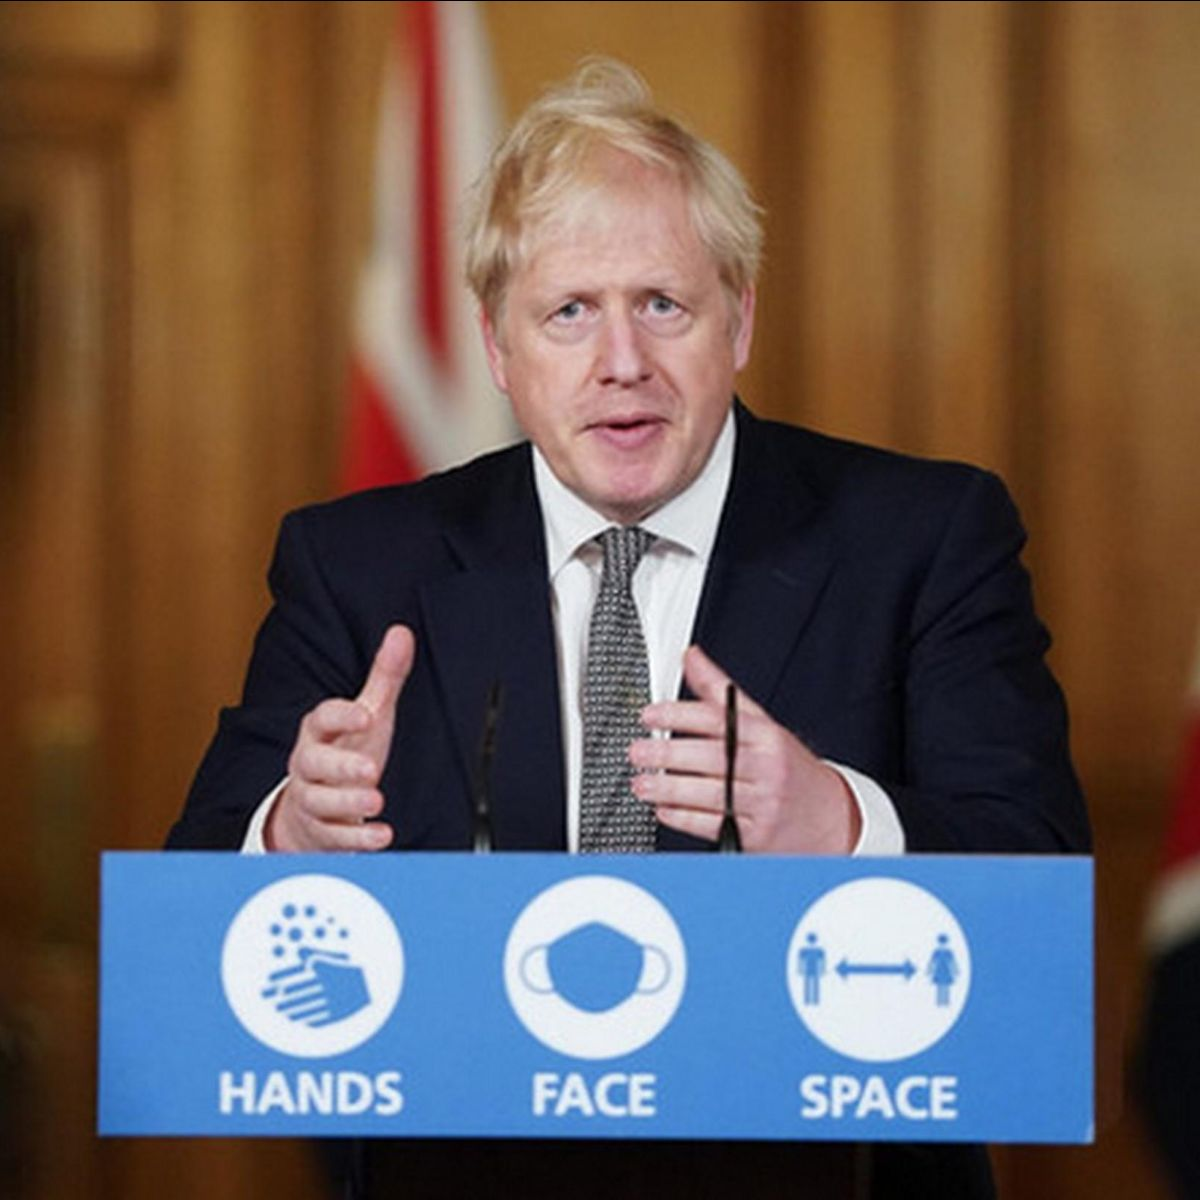 Prime Minister Boris Johnson announced the new lockdown on 31 October following extensive press reports